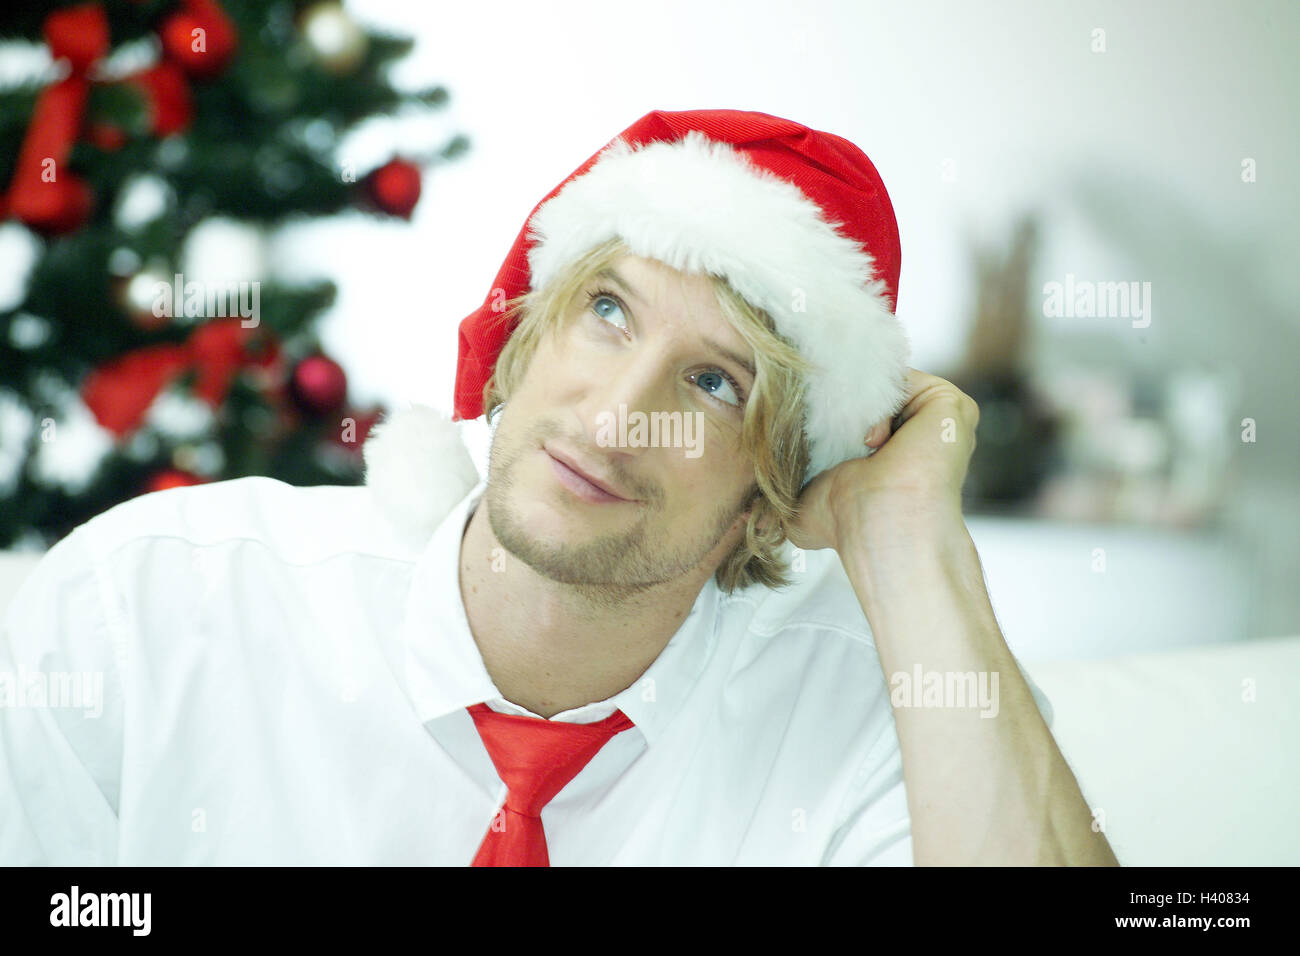 Christmas, sofa, man, young, Santa's hat, considers, to high-level views, portrait, yule tide, Christmas tree, - Stock Image